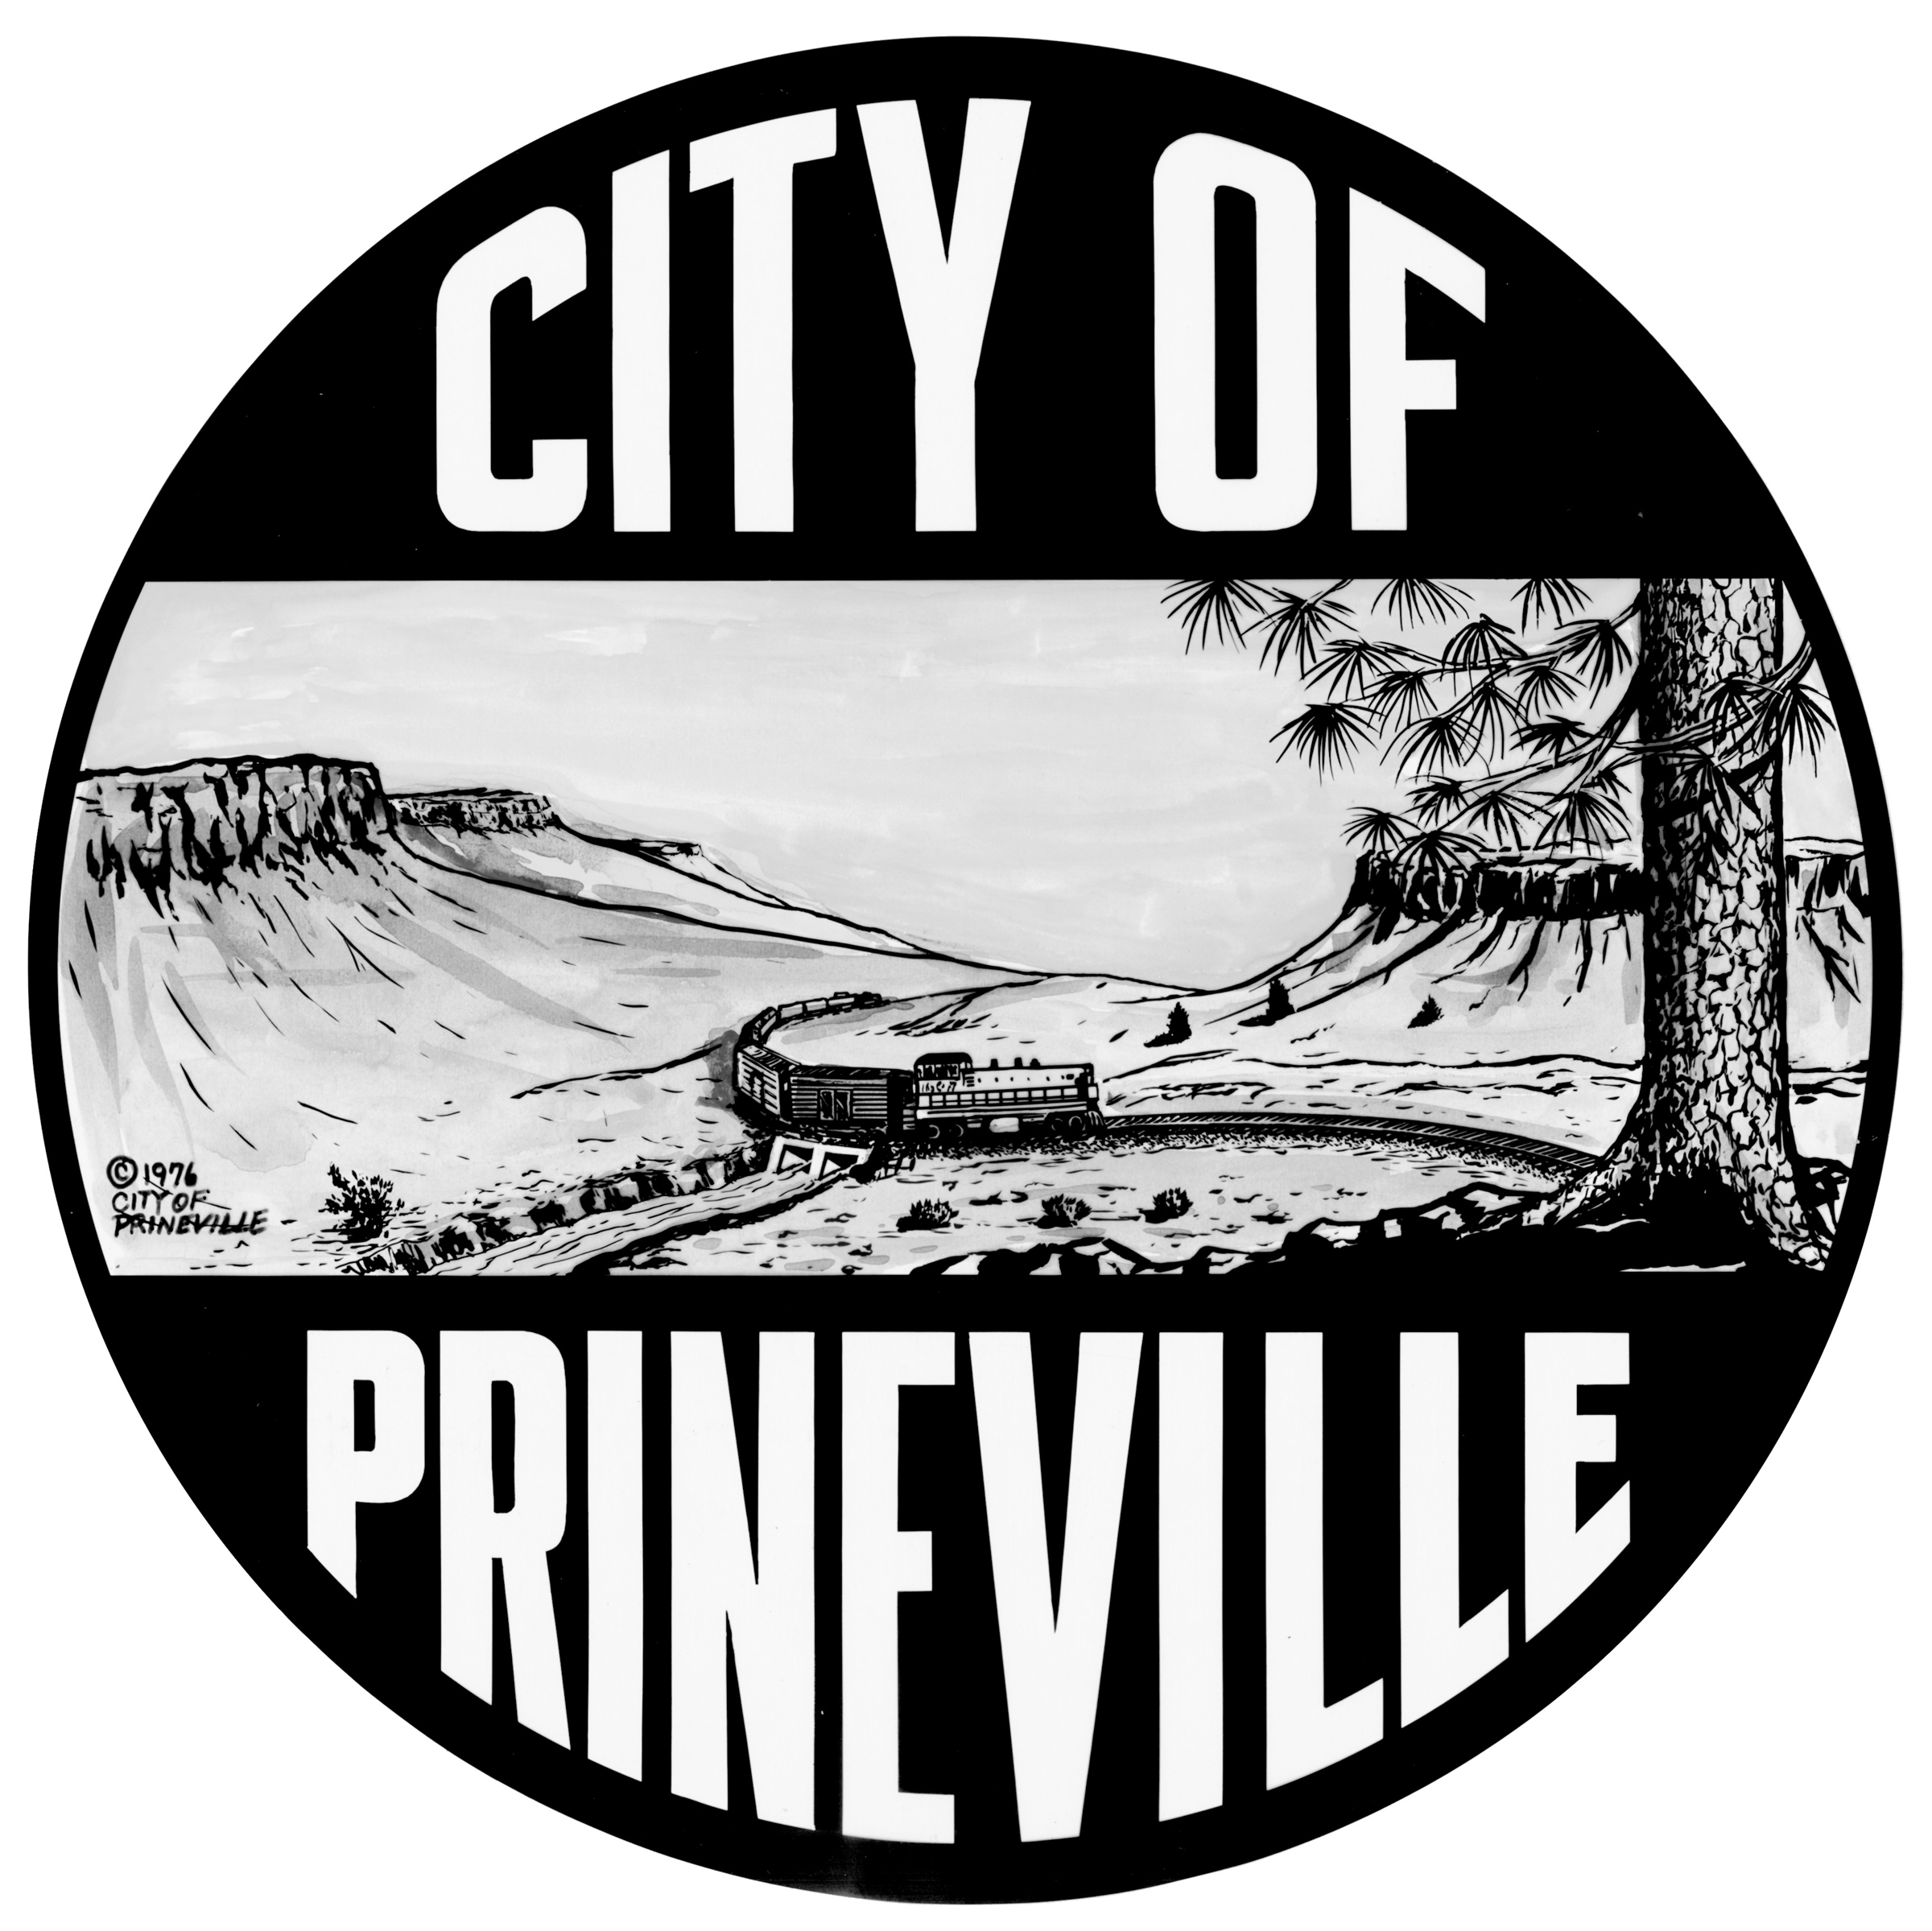 City of Prineville Oregon logo